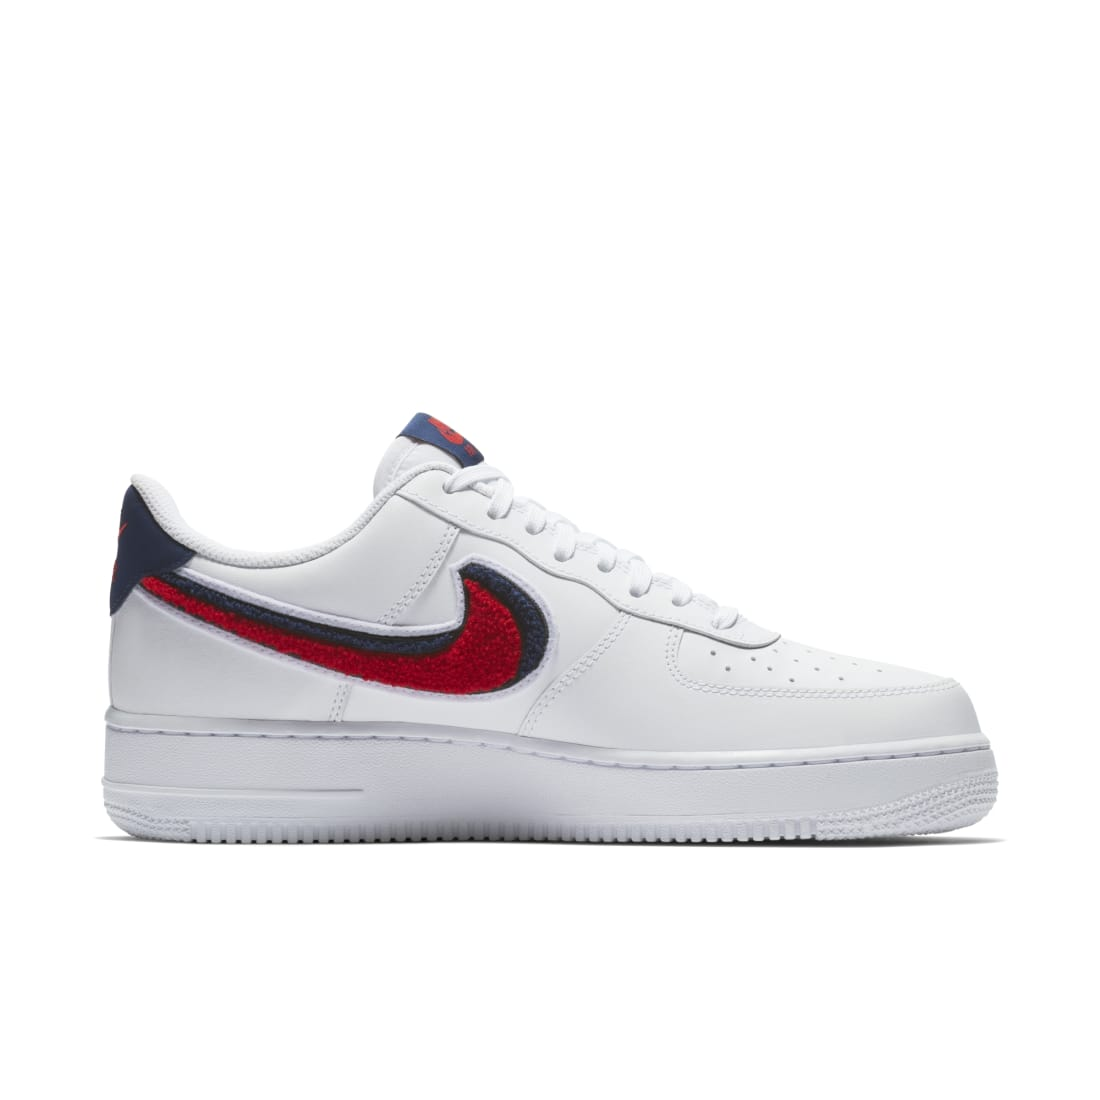 soborno escarcha temerario  Nike Air Force 1 Low 3D Chenille Swoosh White Red Blue | Nike | Sole  Collector